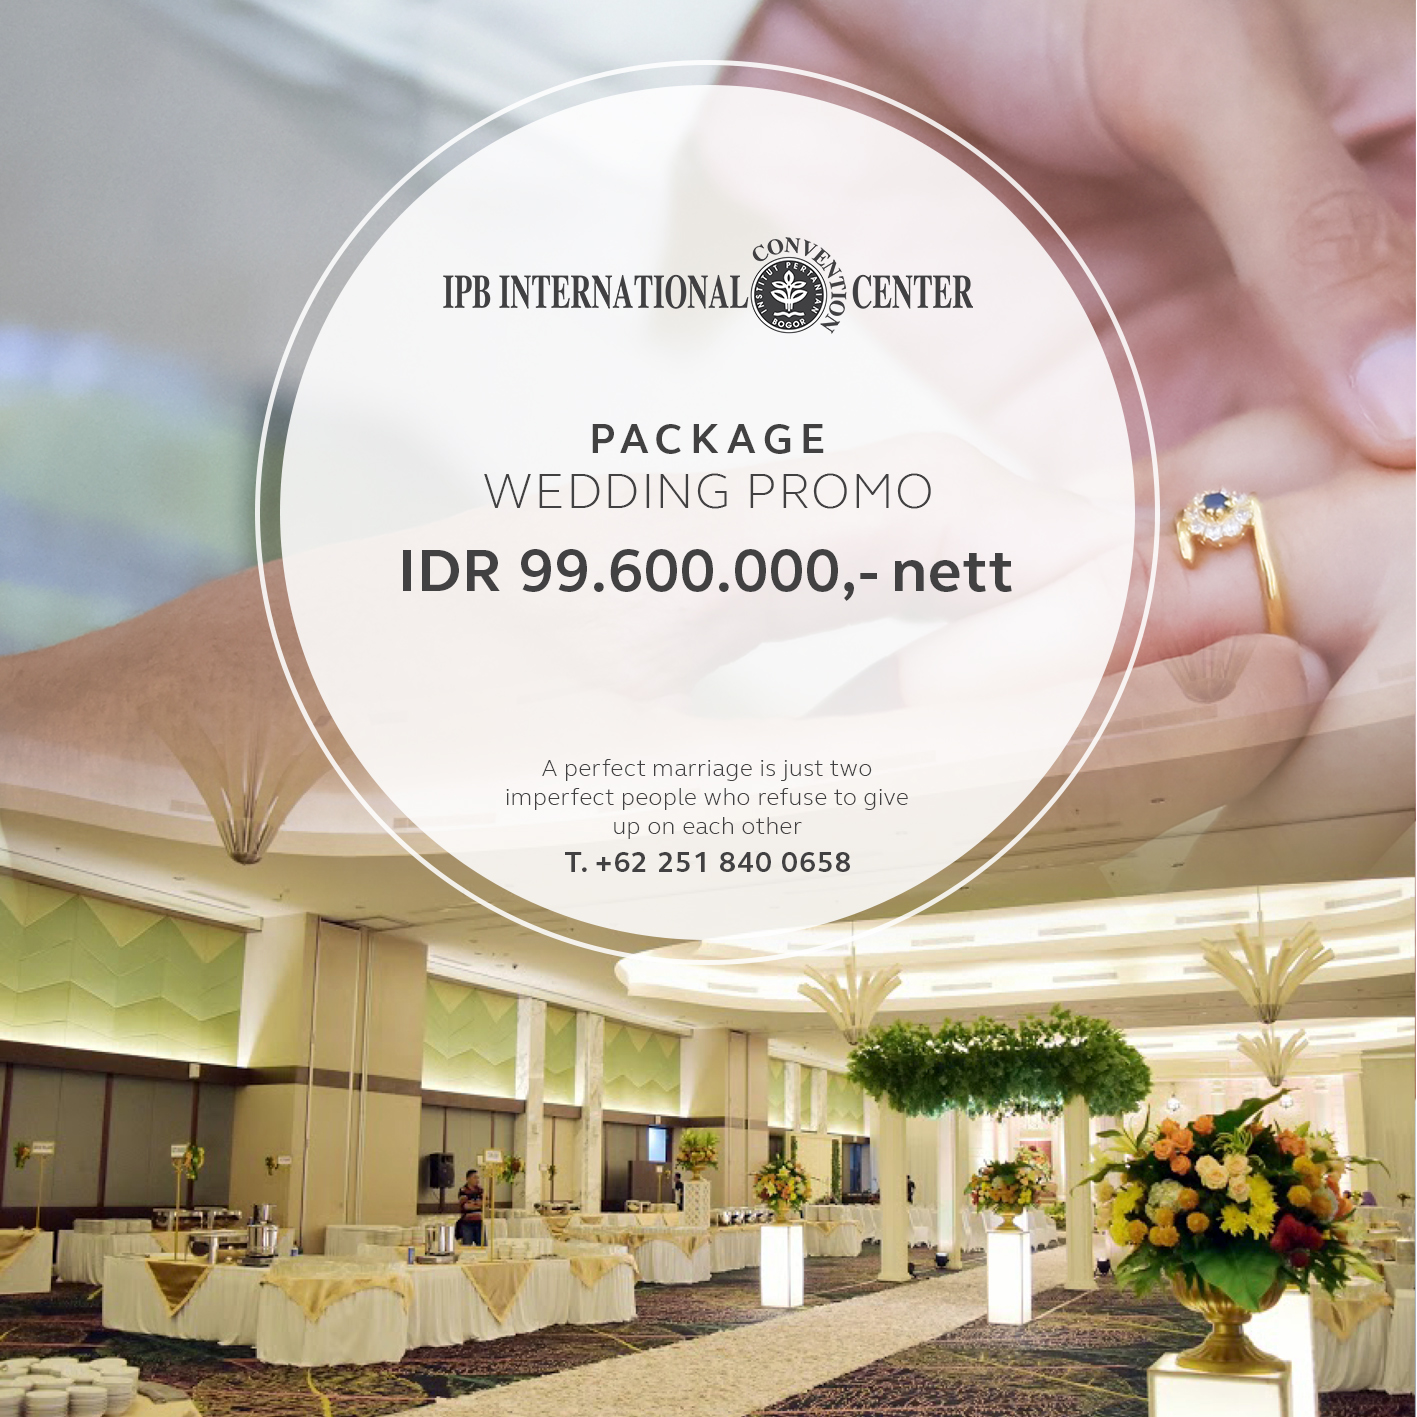 Puri begawan wedding venue in bogor bridestory junglespirit Image collections